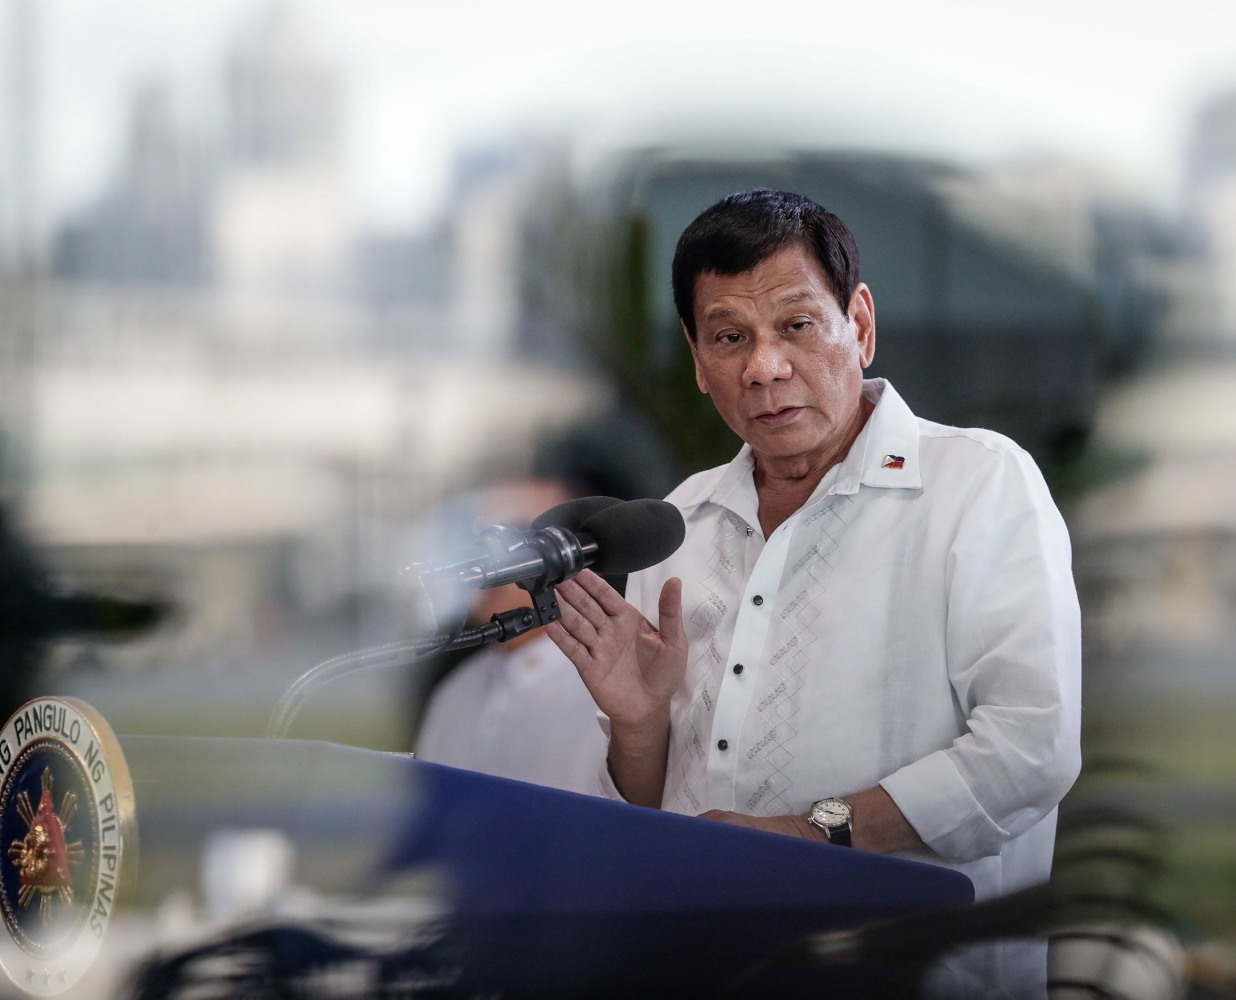 Trump, Duterte have 'cordial' first meeting at APEC summit